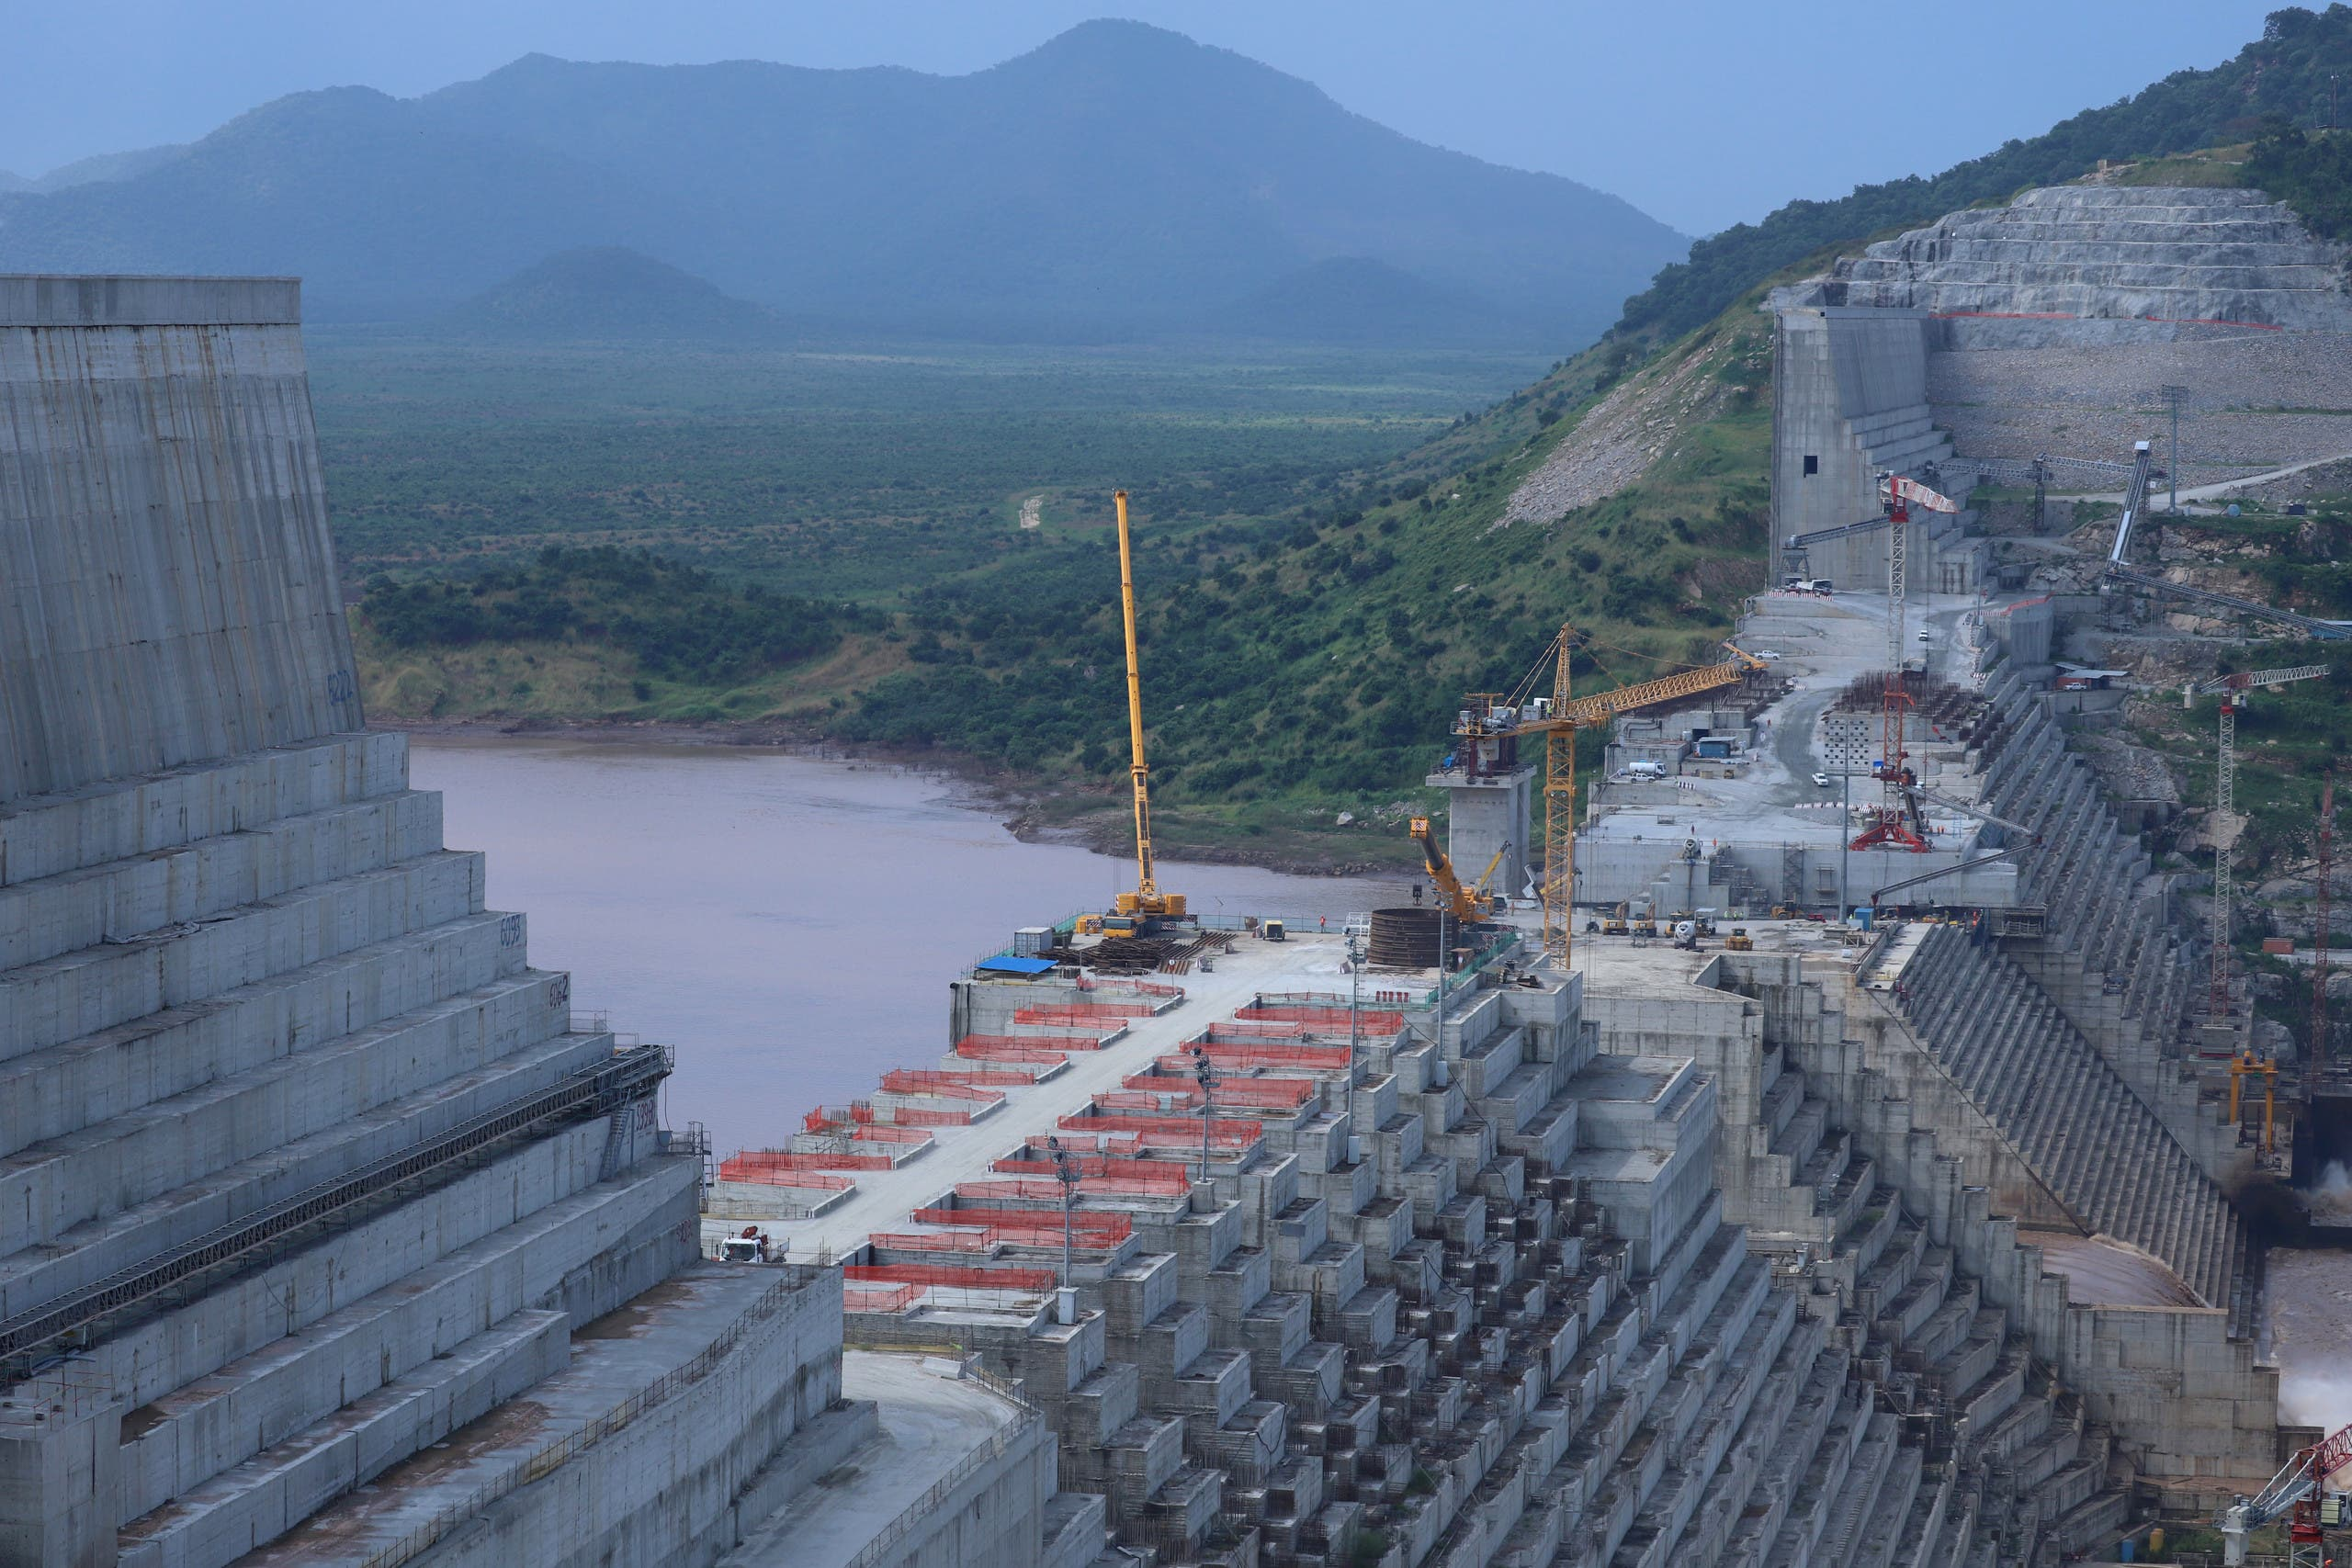 Ethiopia's Grand Renaissance Dam is seen as it undergoes construction work on the river Nile in Guba Woreda, September 26, 2019. (File photo: Reuters)